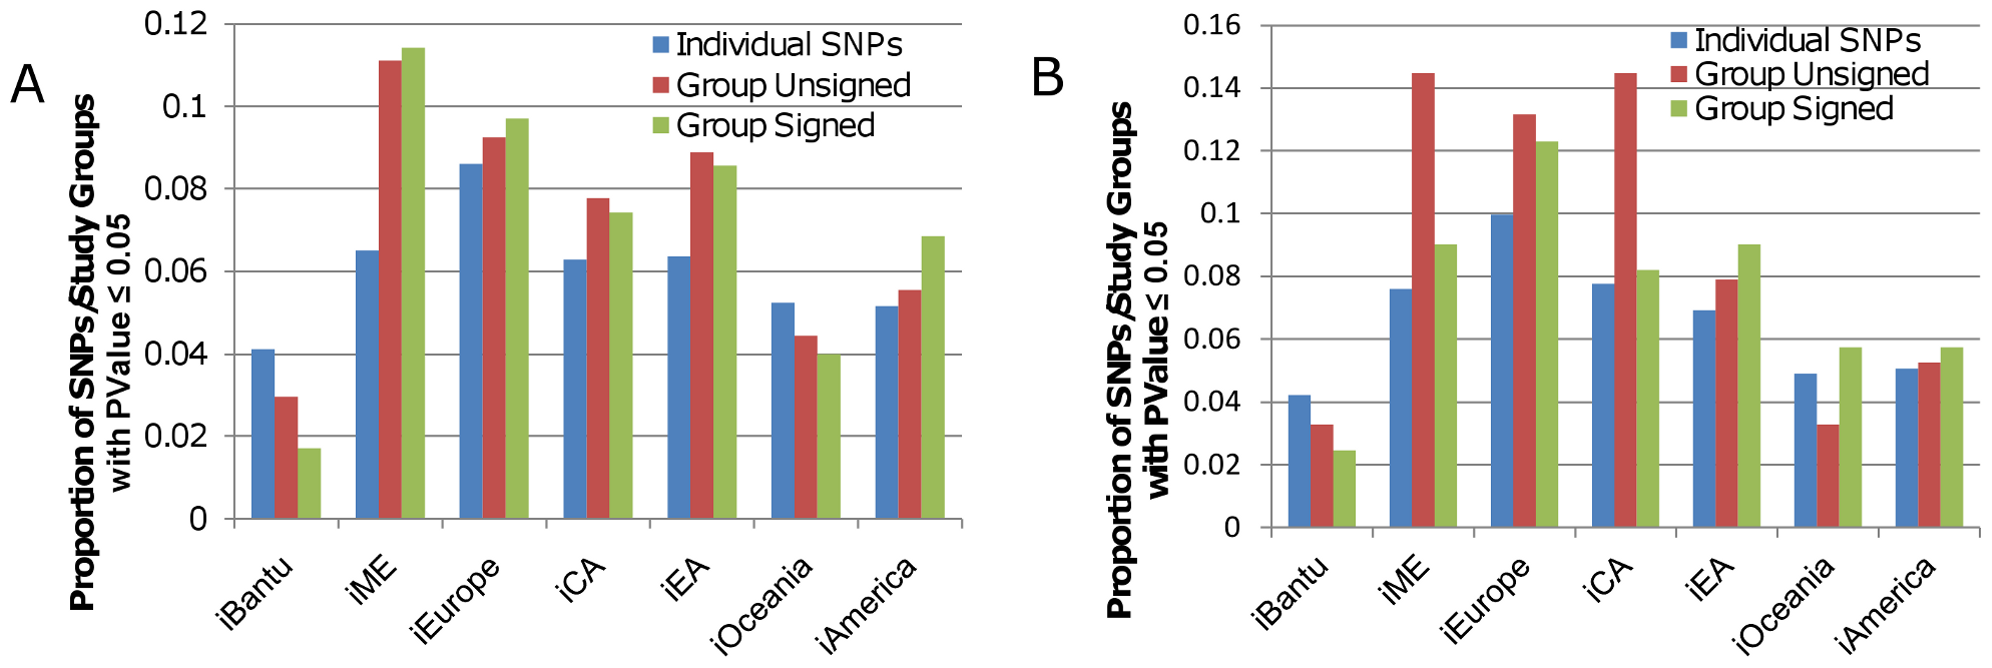 Proportion of SNPs and study groups with P-values ≤0.05 for iHS scores.